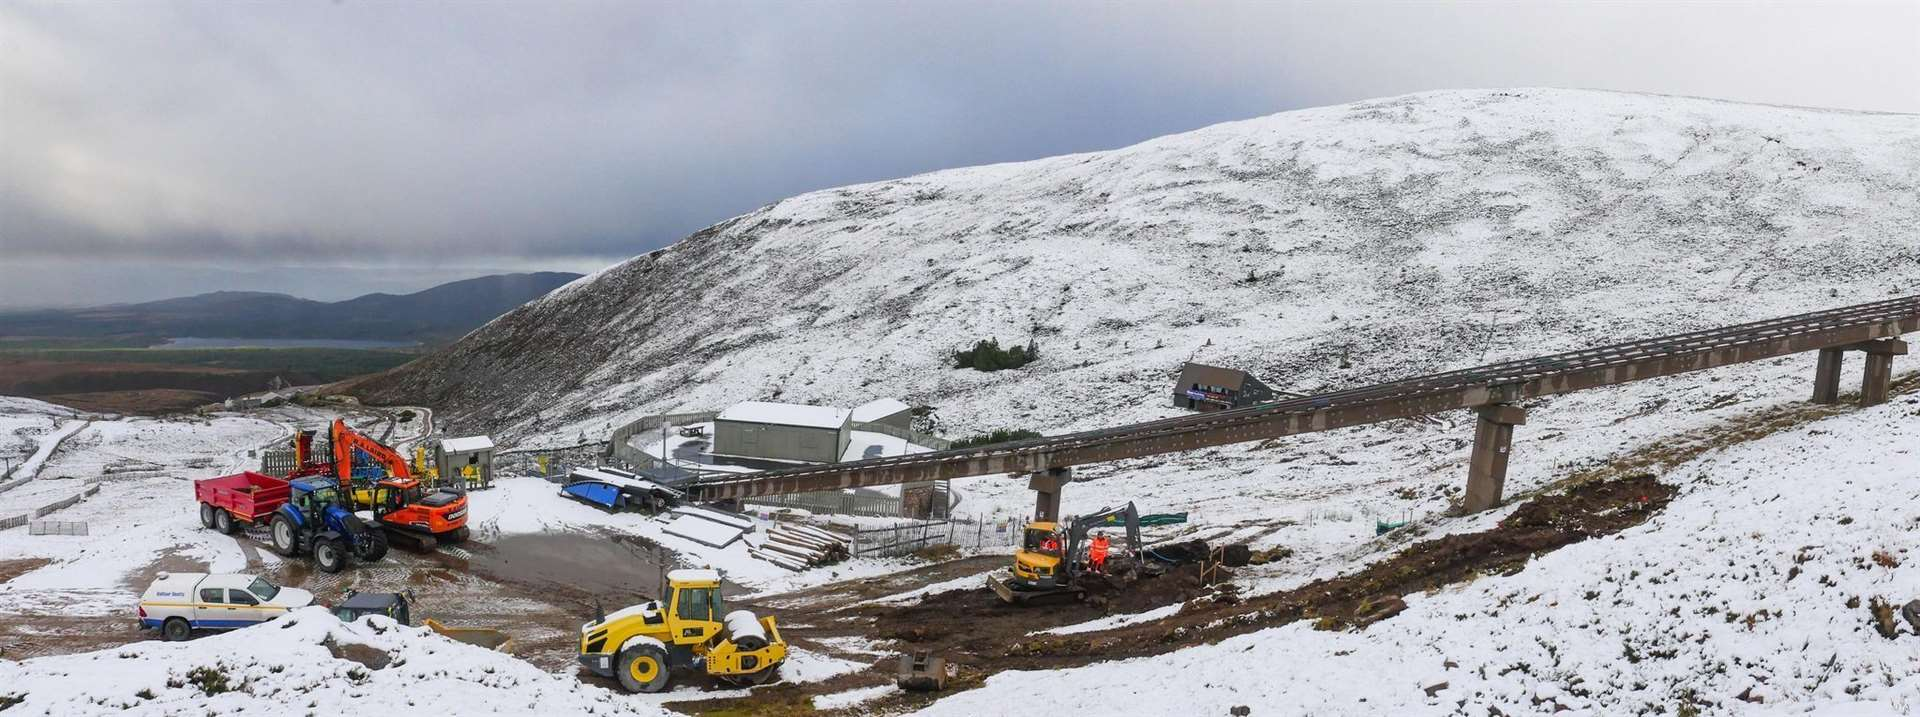 Work started earlier this week on the repair of the Cairngorm funicular by contractor Balfour Beatty.